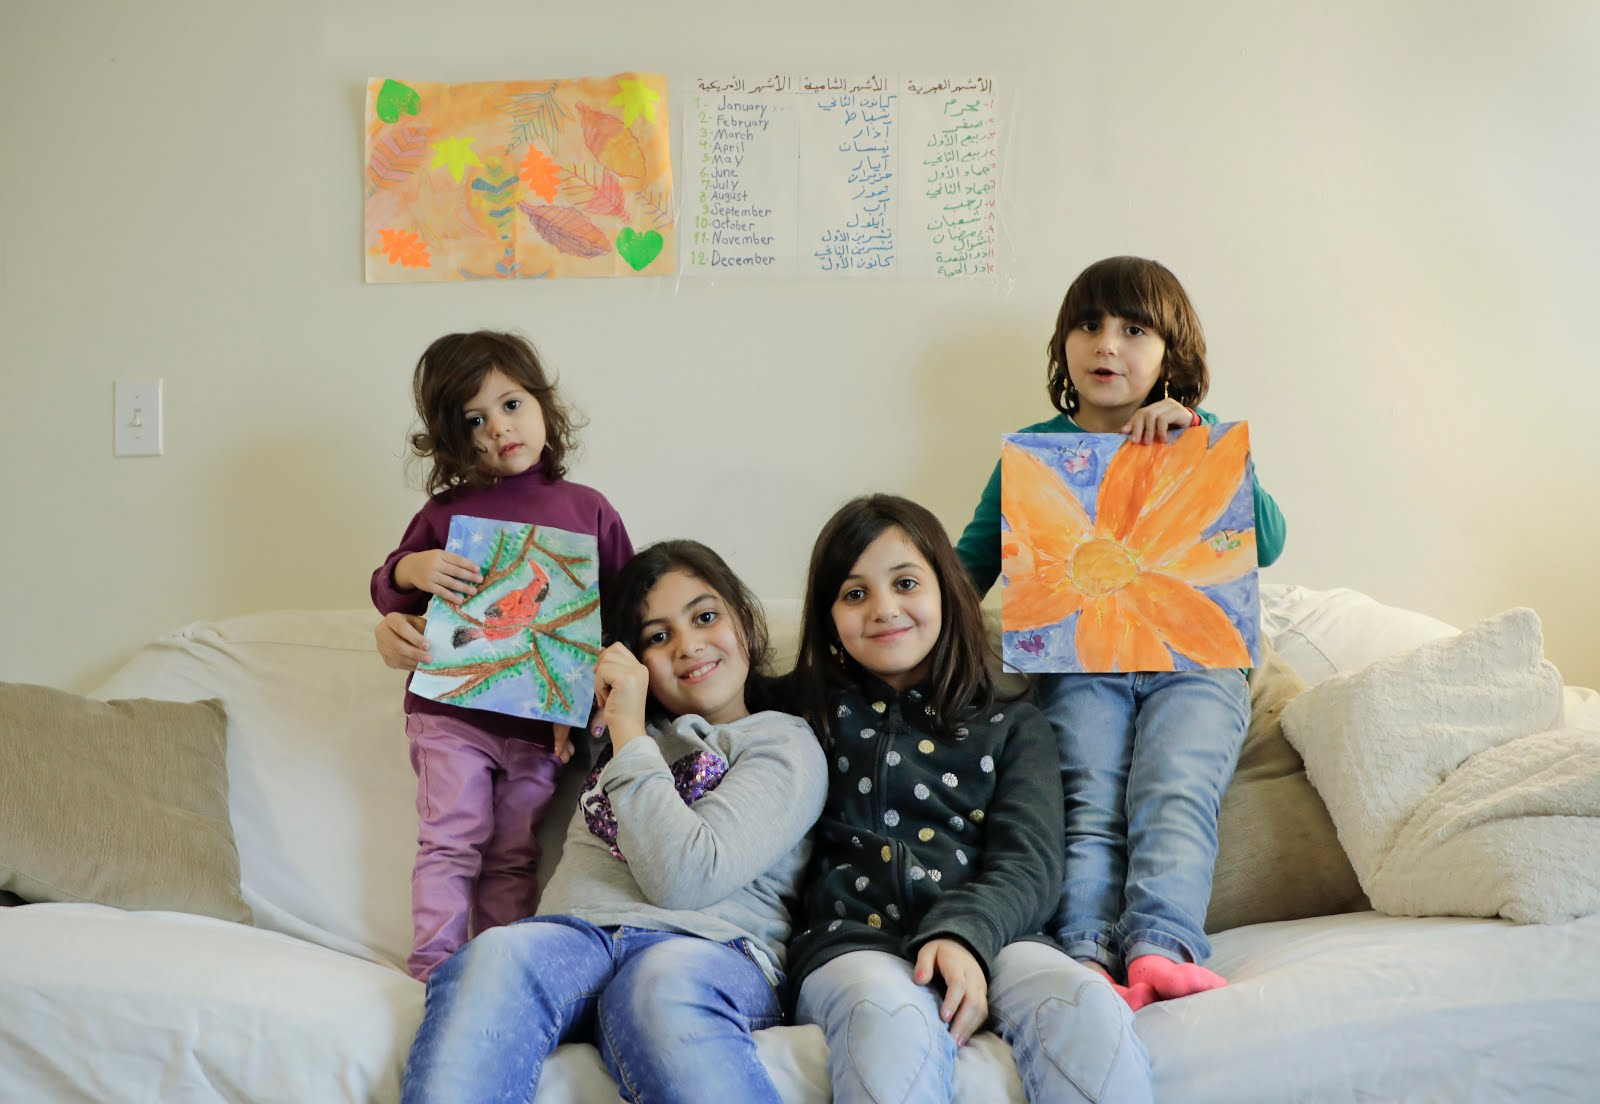 Sisters from Homs, Syria